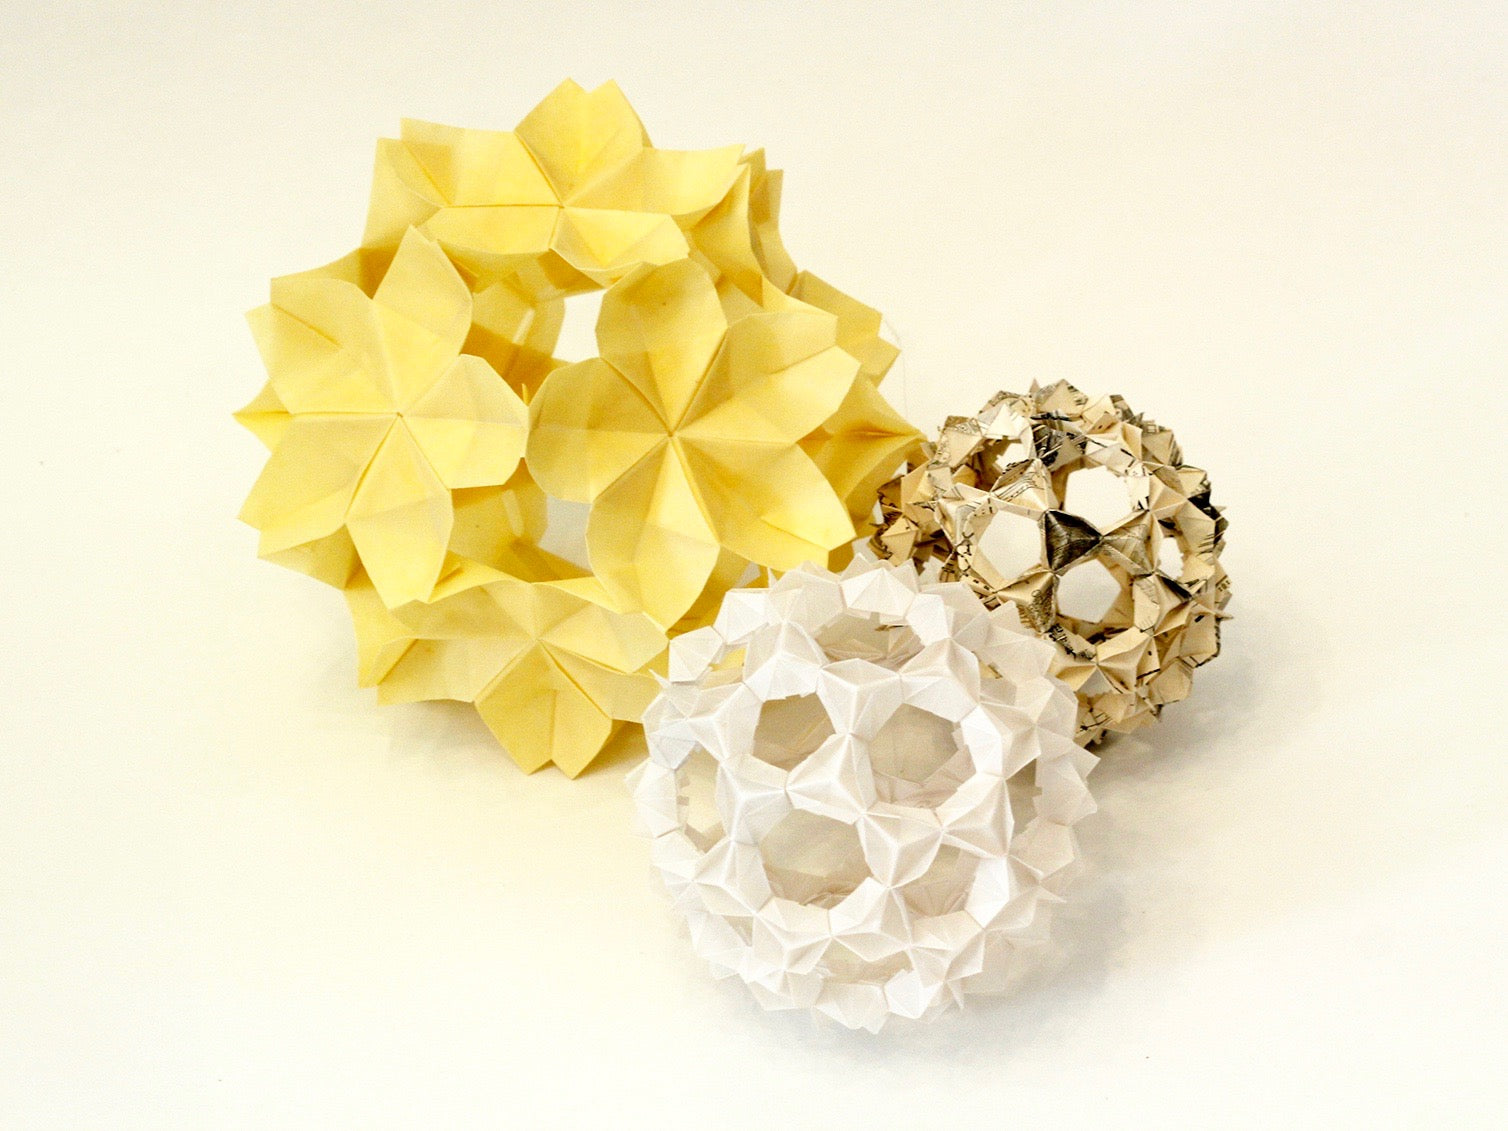 modular origami decorations, sakura kusudama, bucky ball, for wedding, party, event